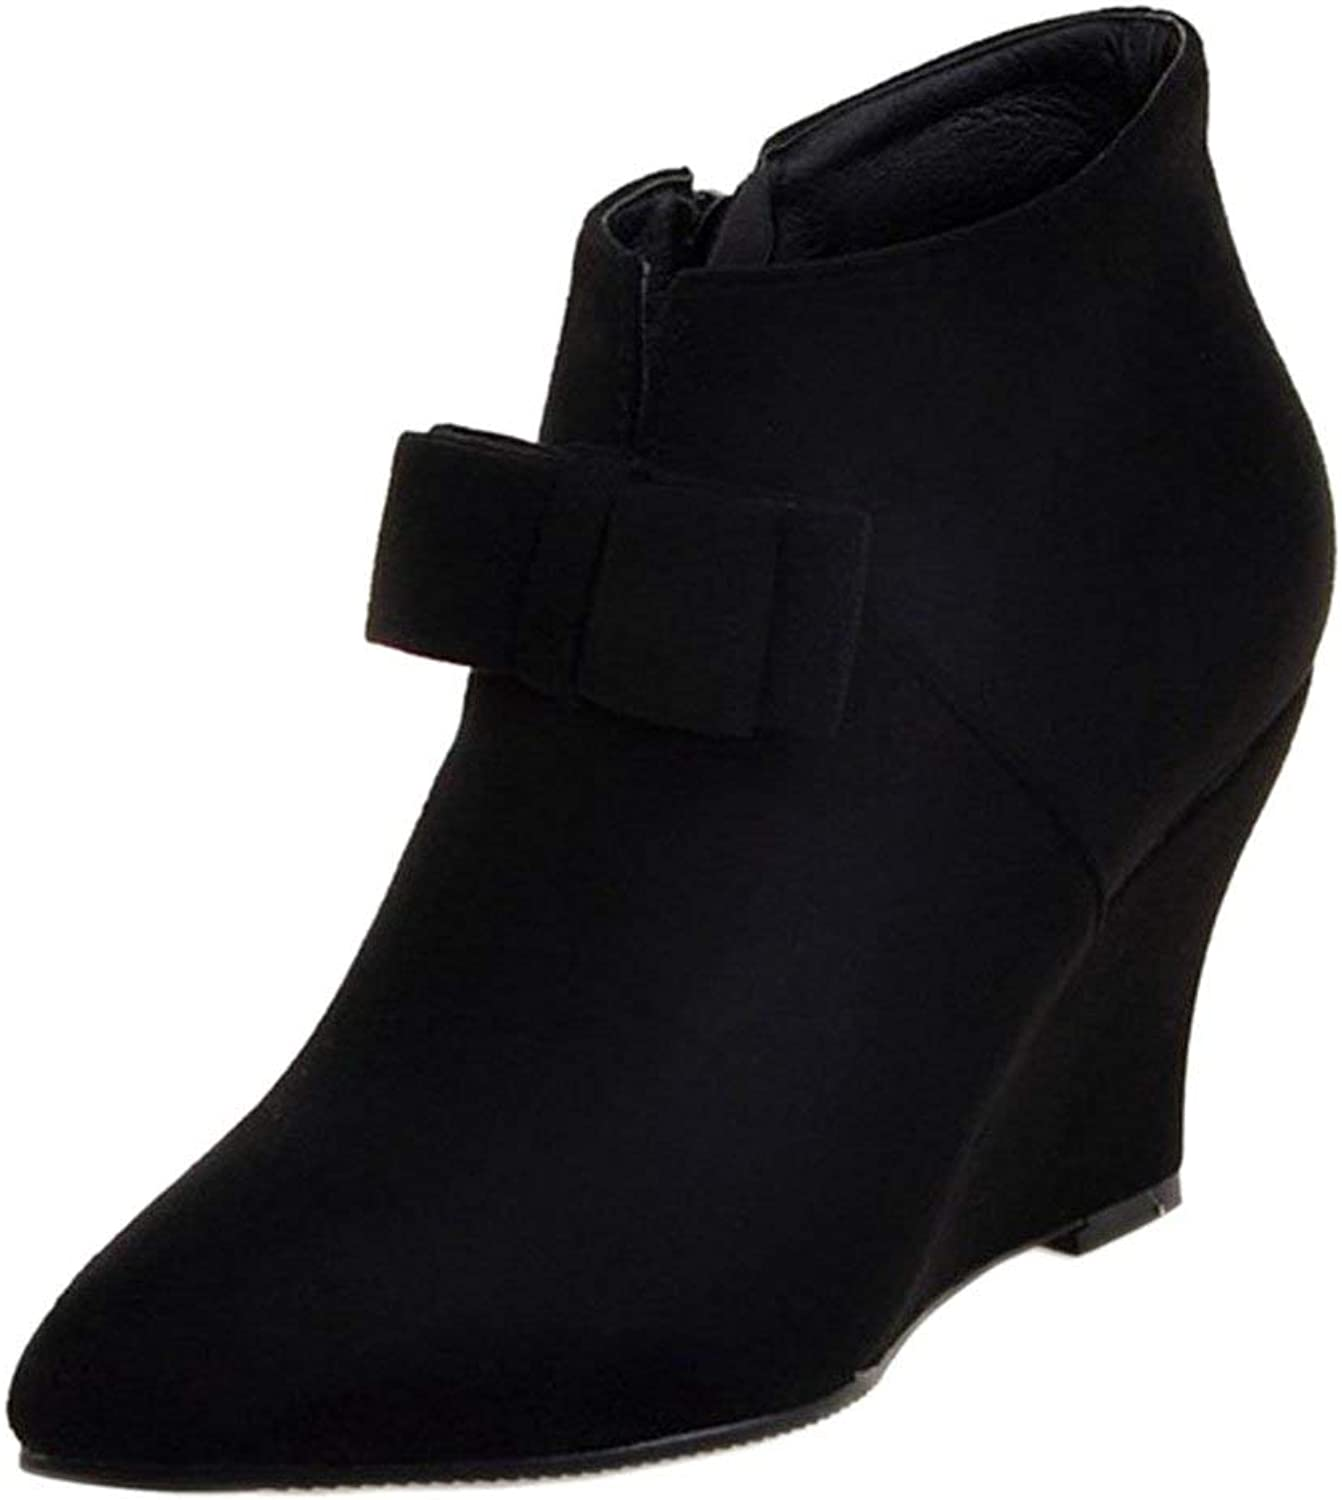 Unm Women's Wedge Ankle Boots